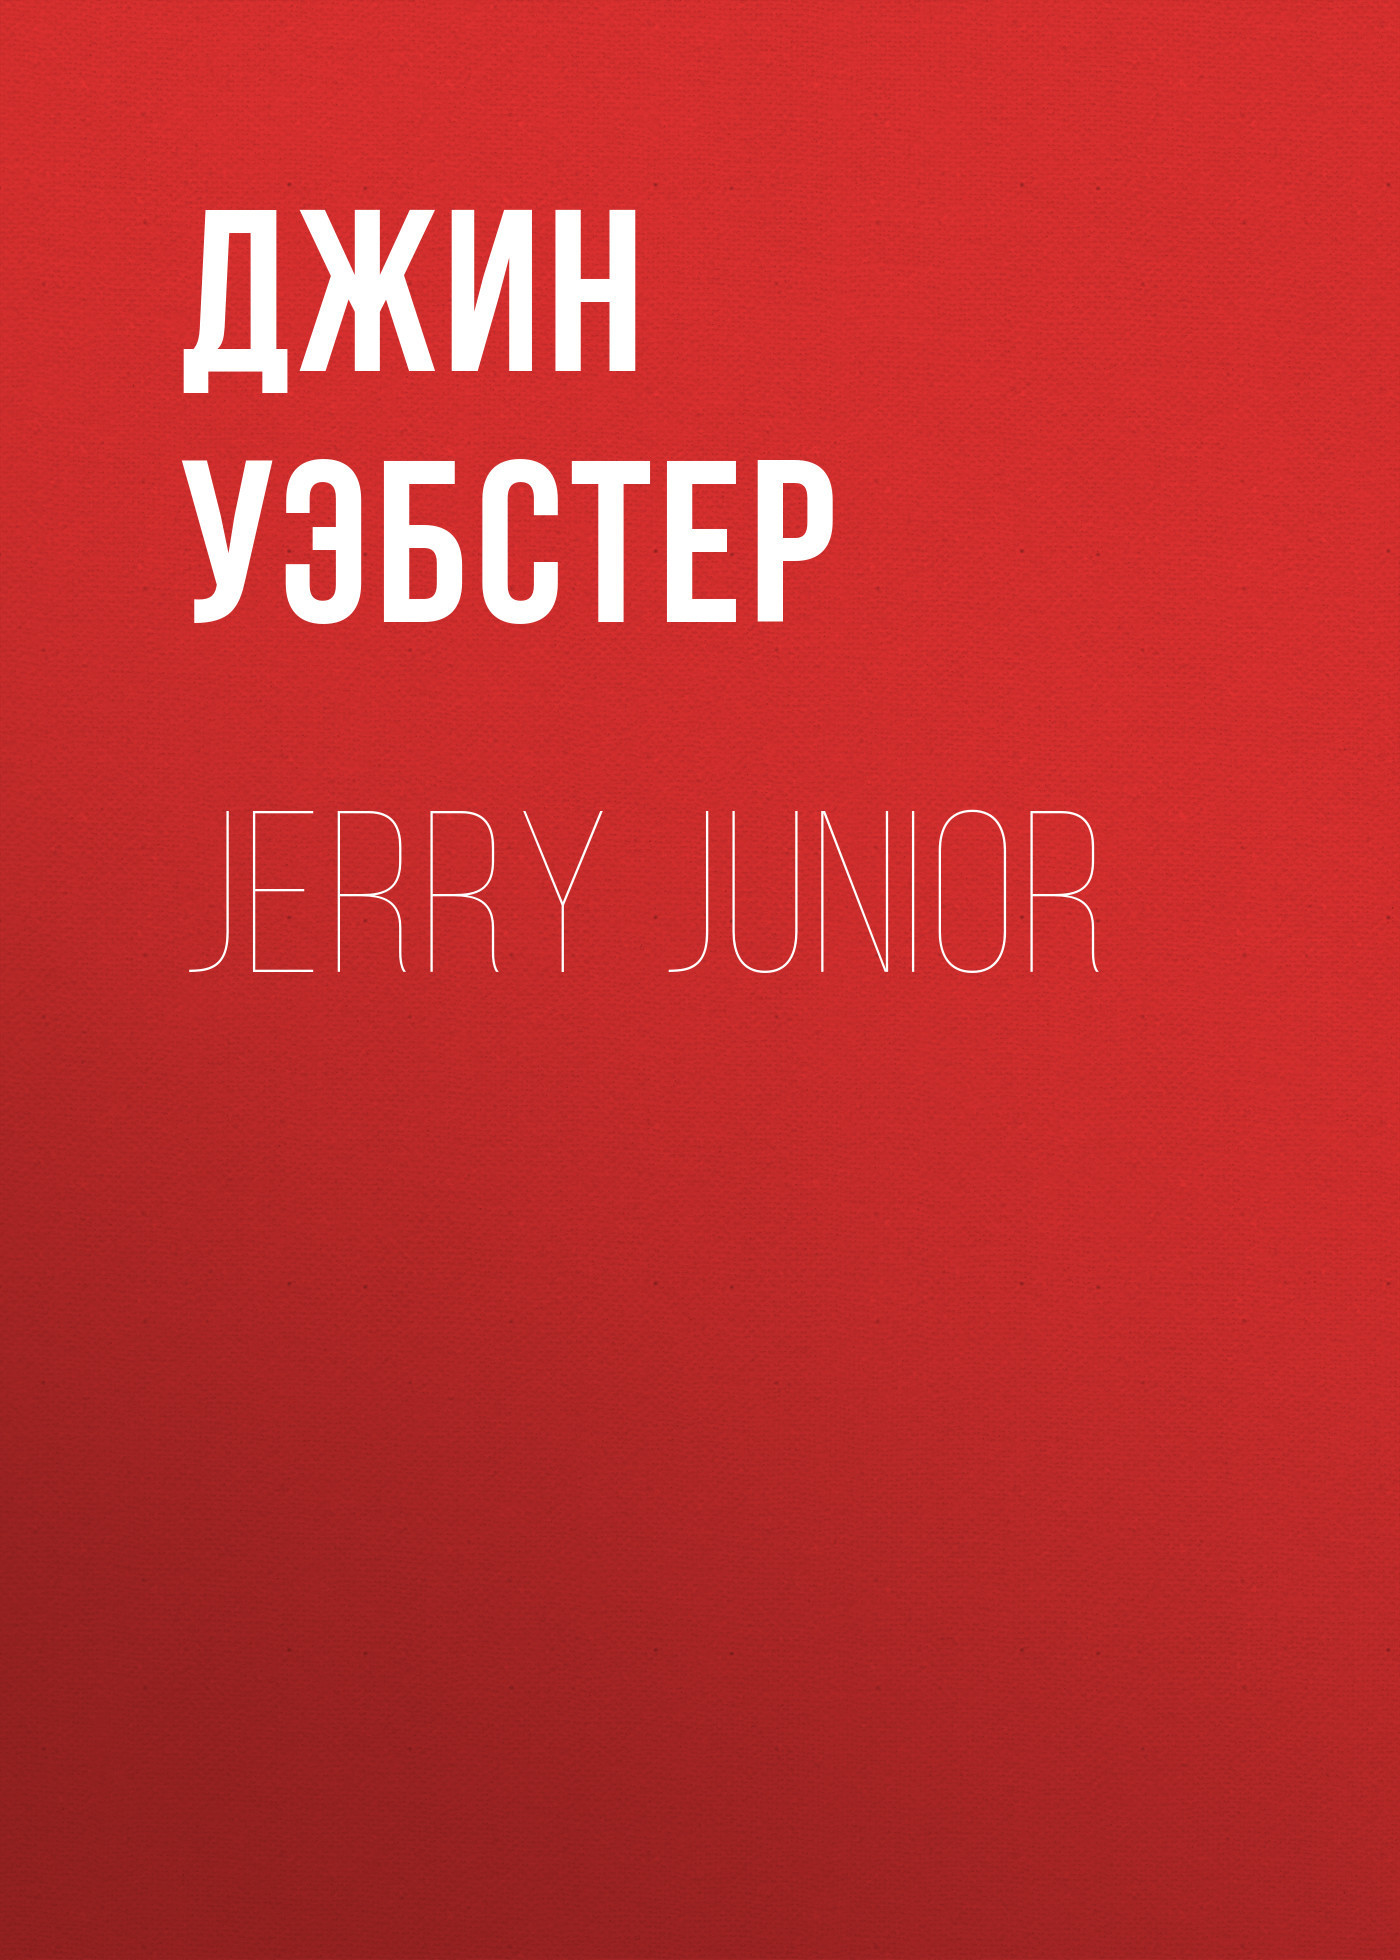 Джин Уэбстер Jerry Junior уэбстер джин патти в колледже повесть